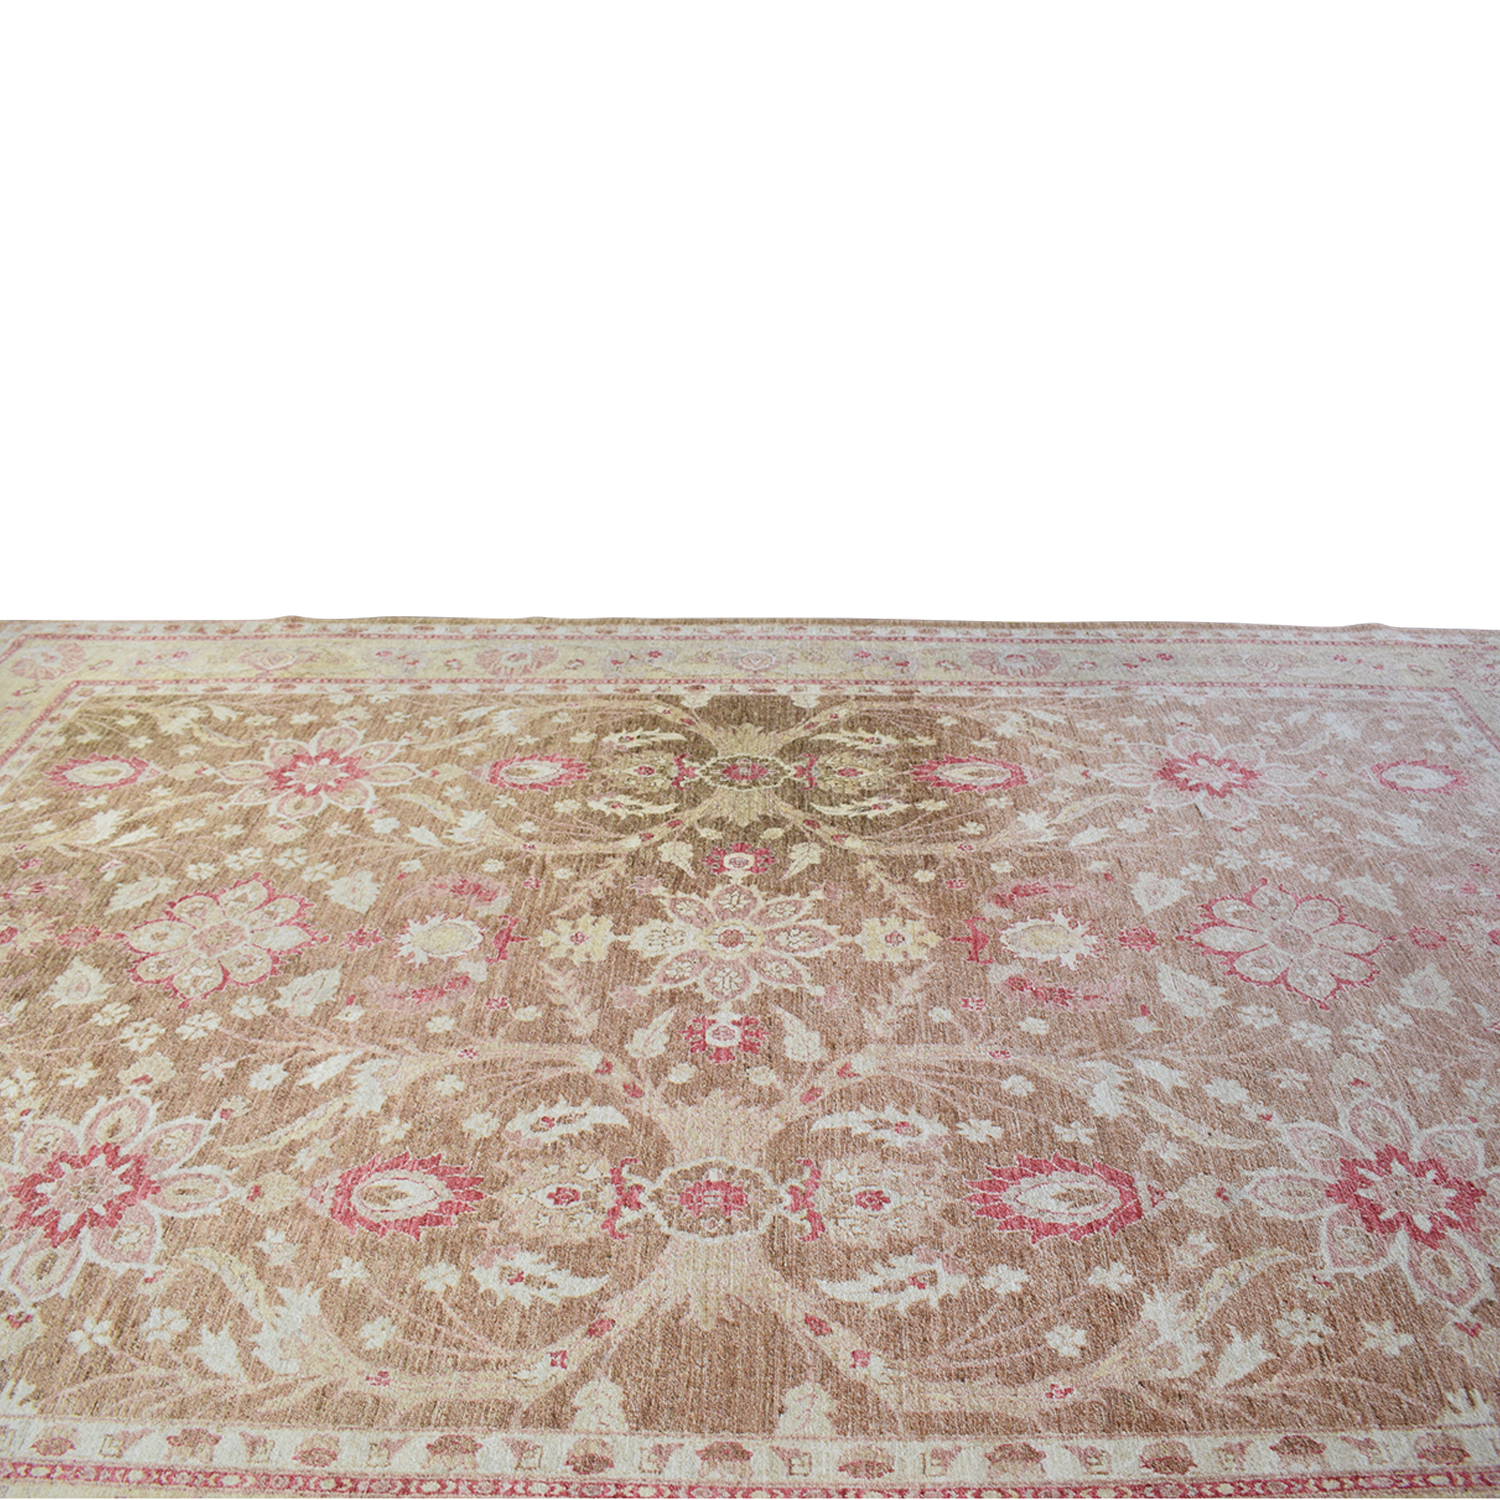 Oriental Decorative Rug used